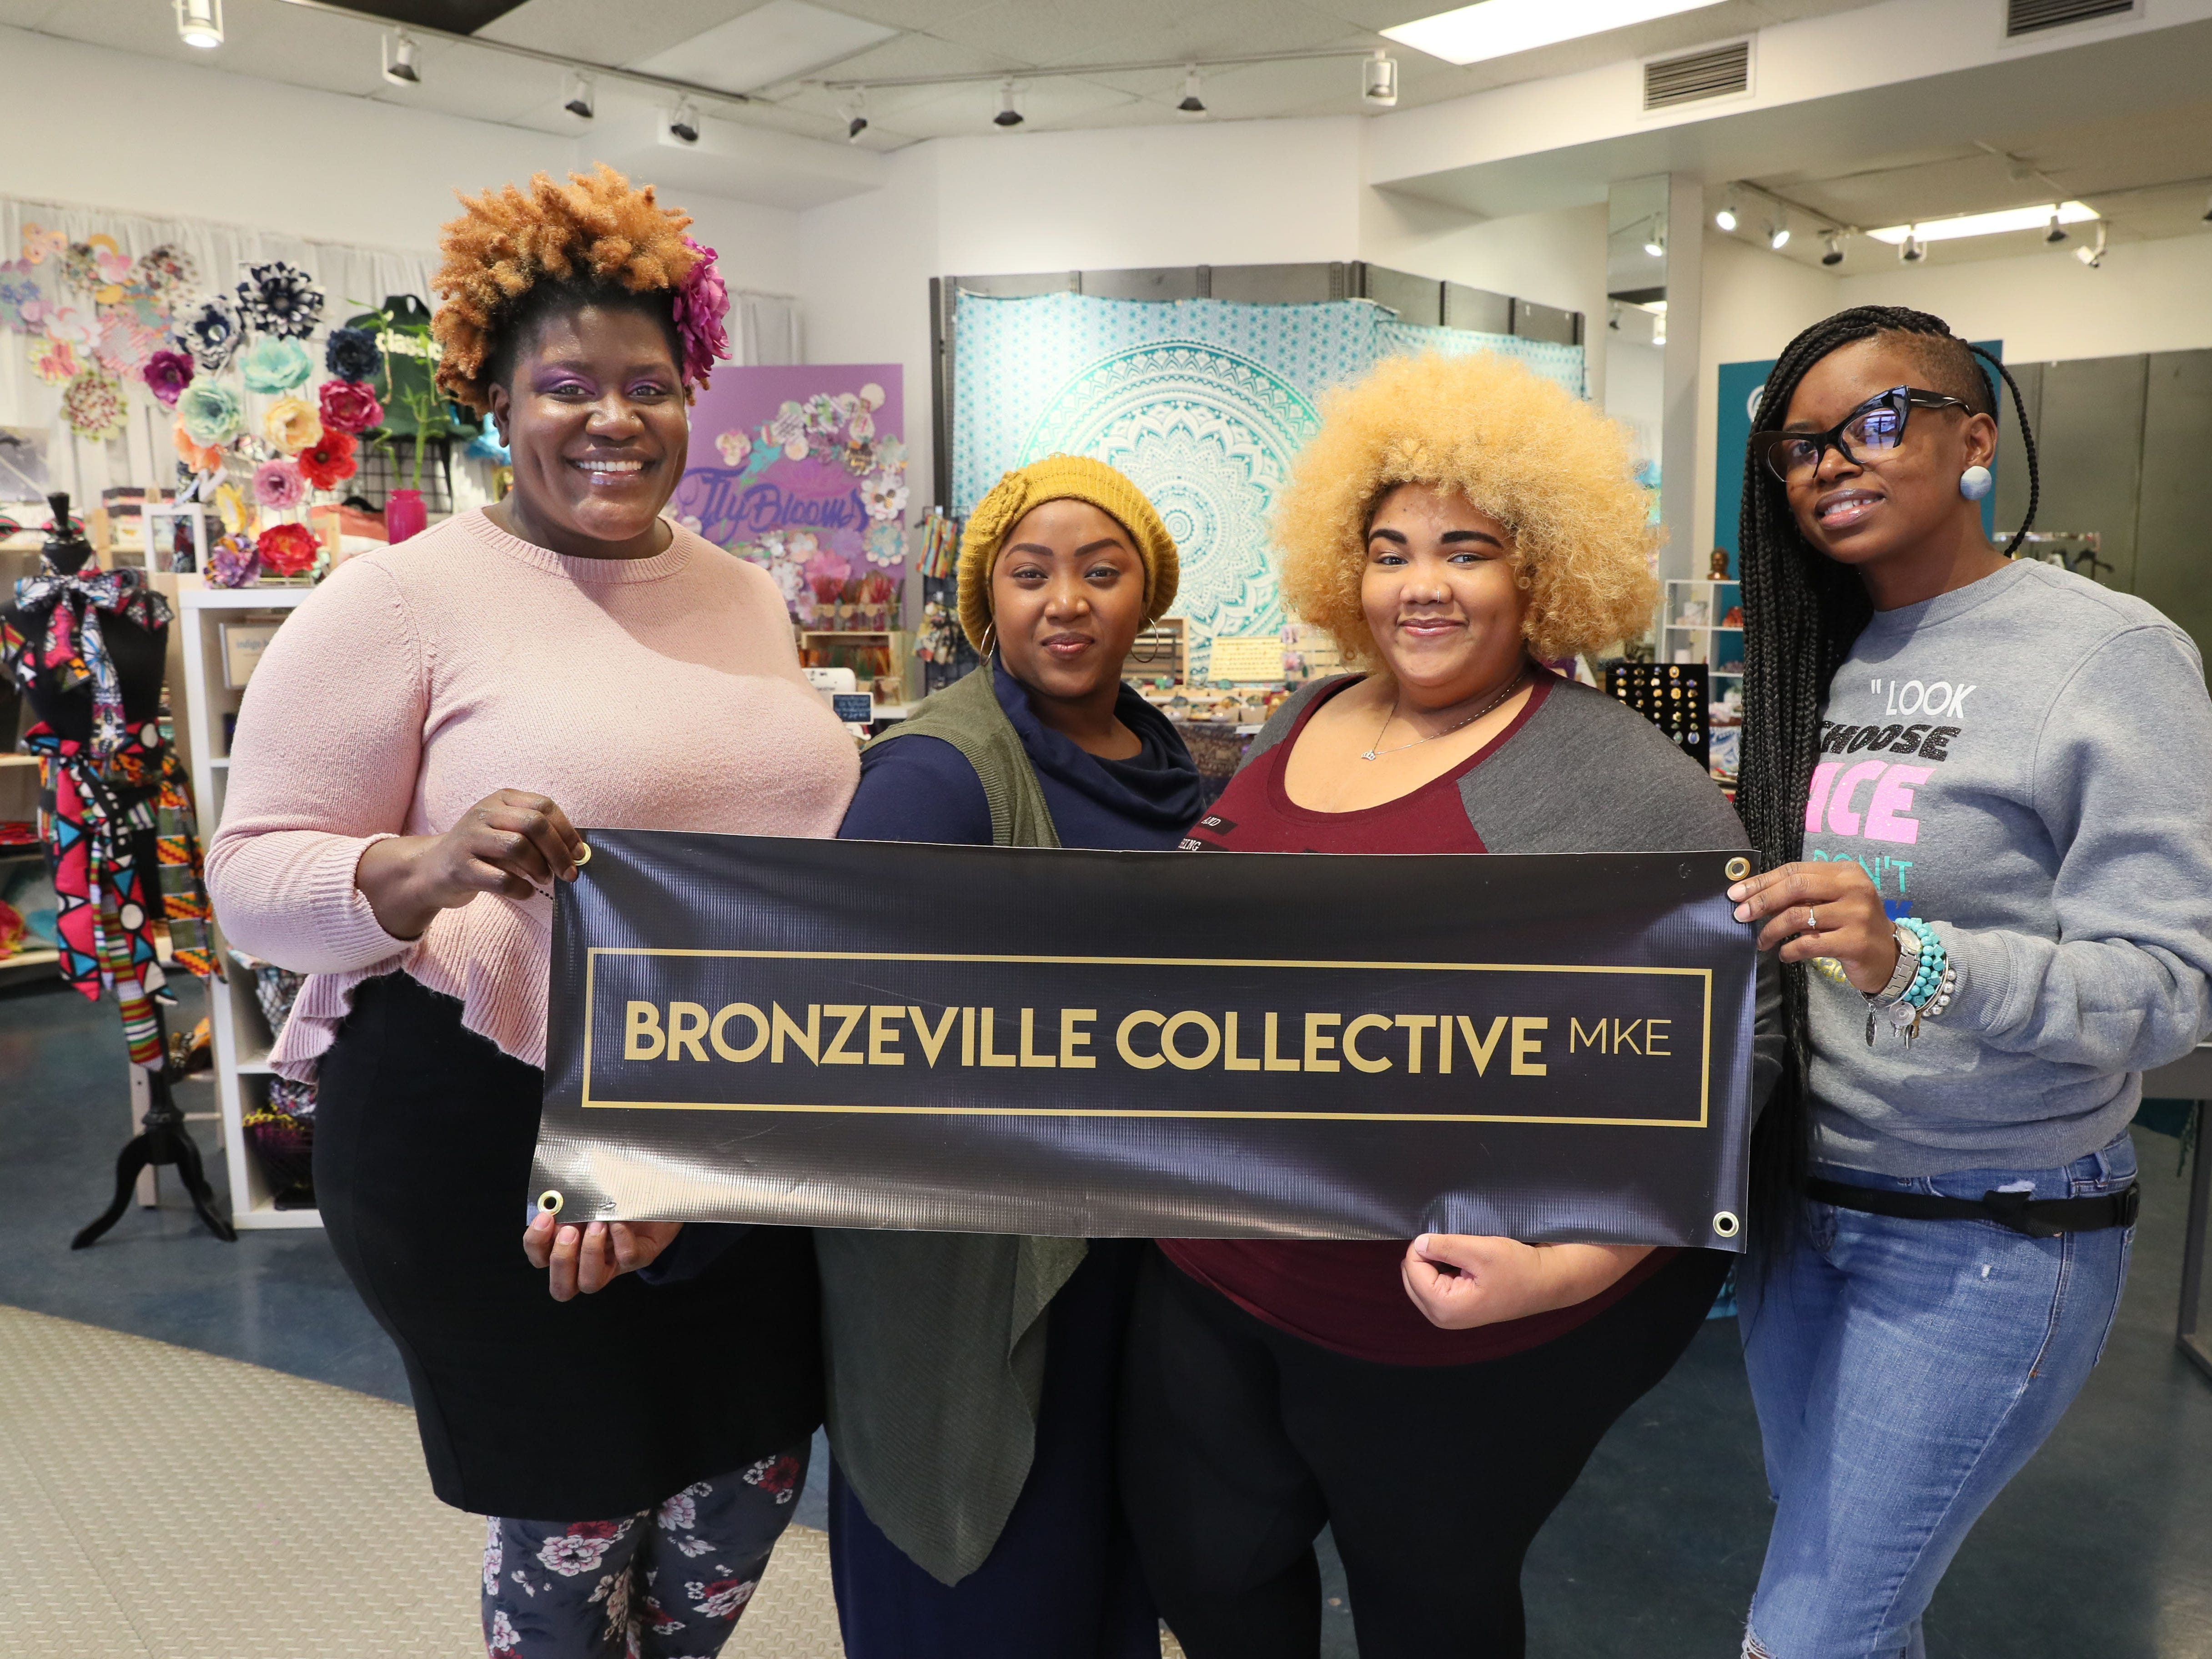 Tiffany Miller (from left), owner of FlyBlooms; Jasmine Barmore, owner of Beelegant Designs; Lilo Allen, owner of Papyrus & Charms; and Tomira White, owner of Distinctive Designs by Tomira; make up The Bronzeville Collective, at 339 W. North Ave.